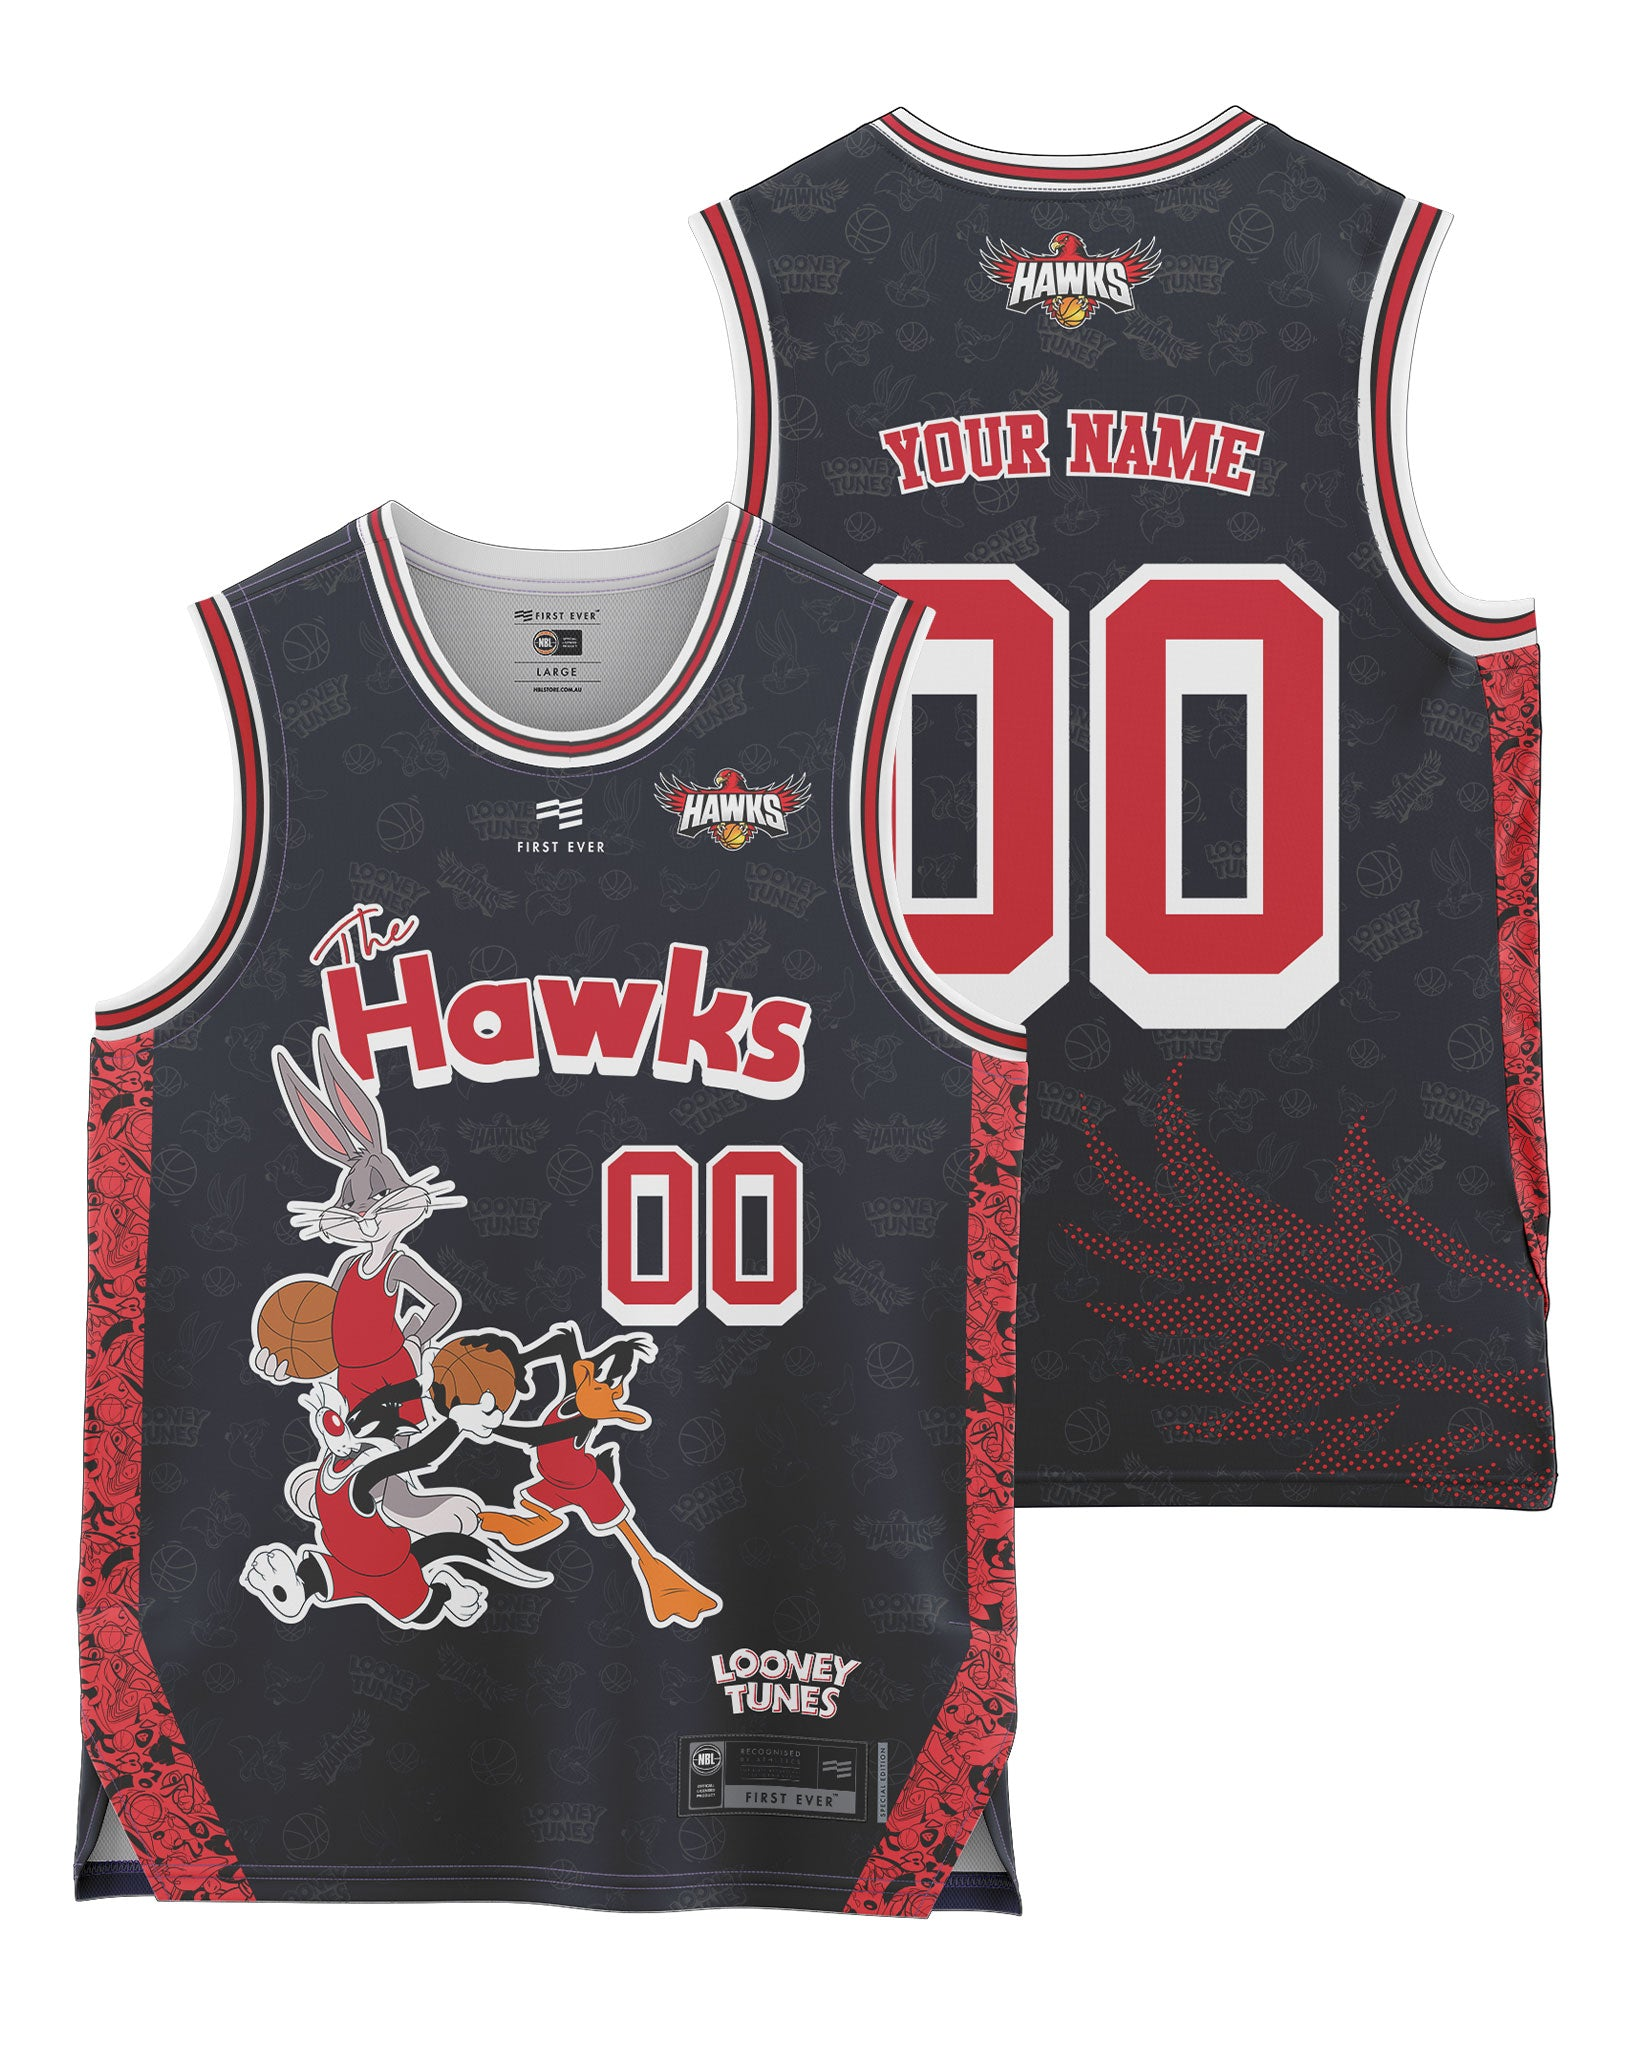 Hawks 20/21 Looney Tunes Youth Fan Jersey - Personalised